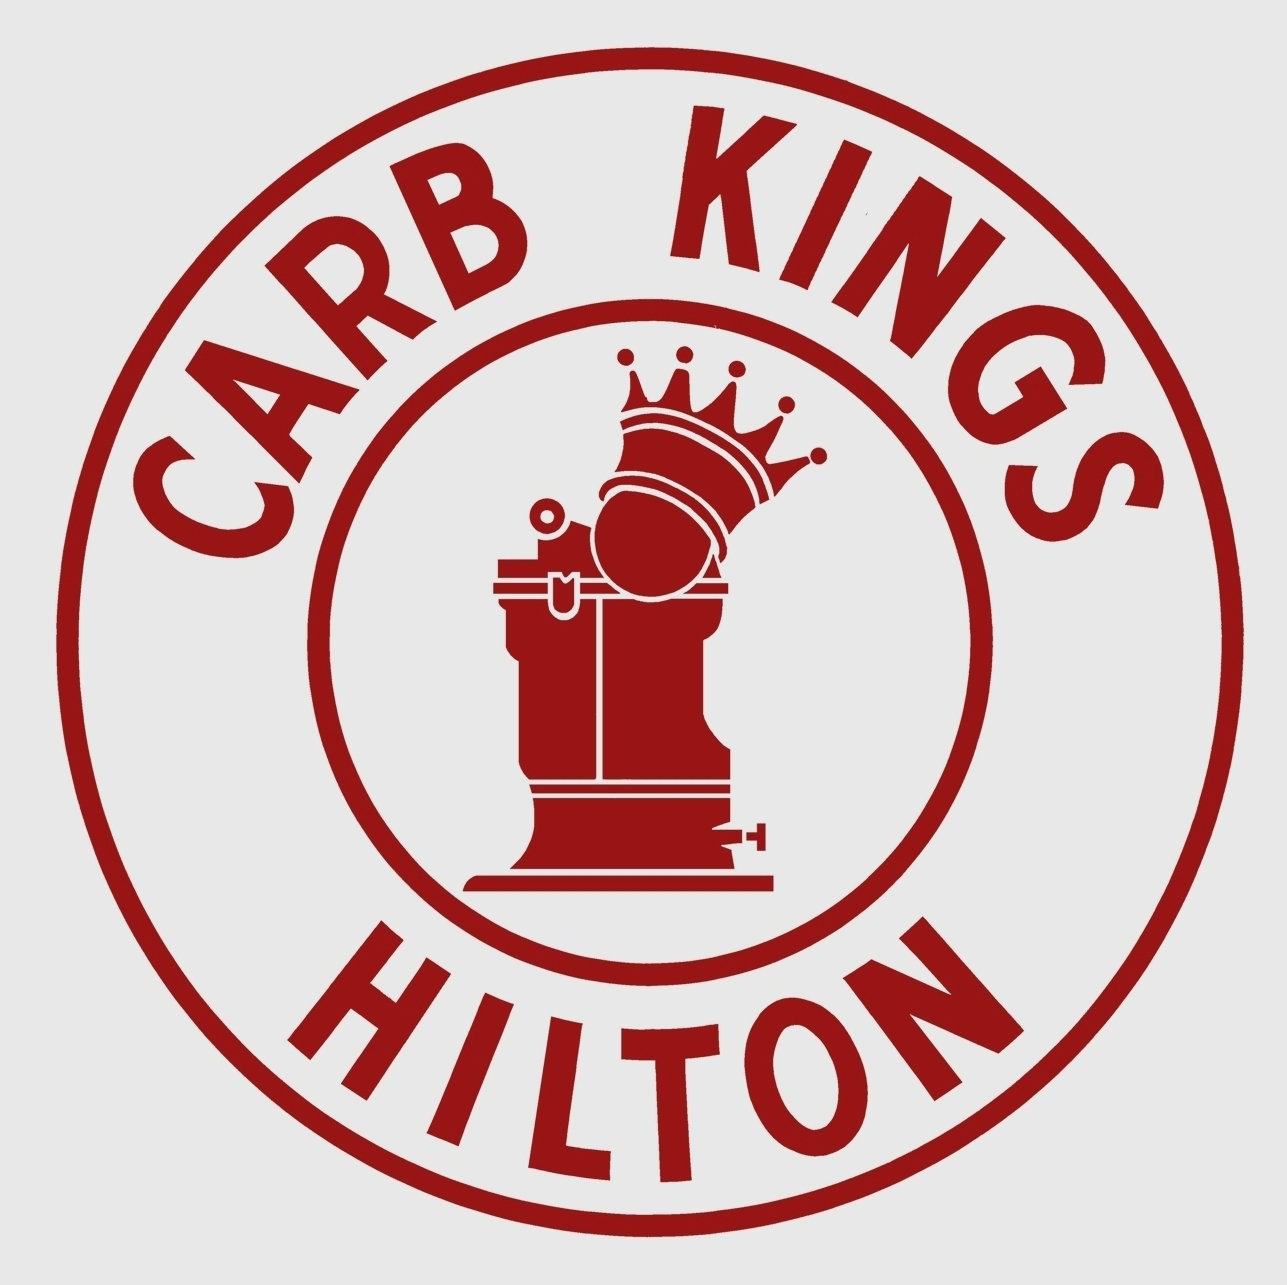 carb kings logo